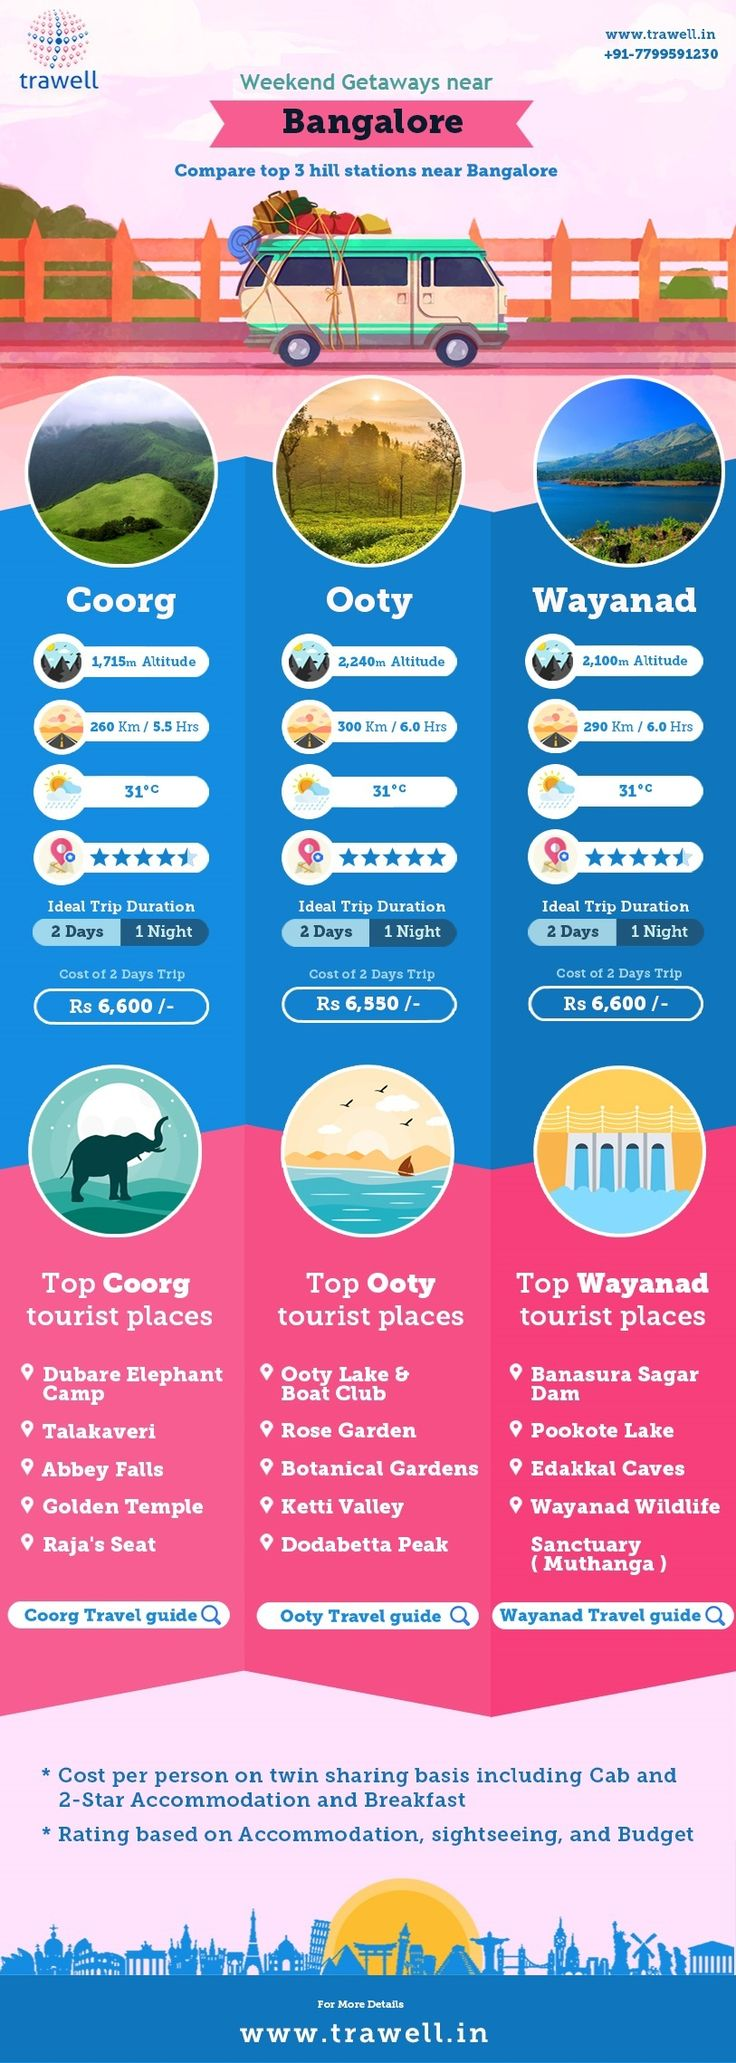 Compare Coorg – Ooty – Wayanad for your trip #Coorg #Ooty #Wayanad